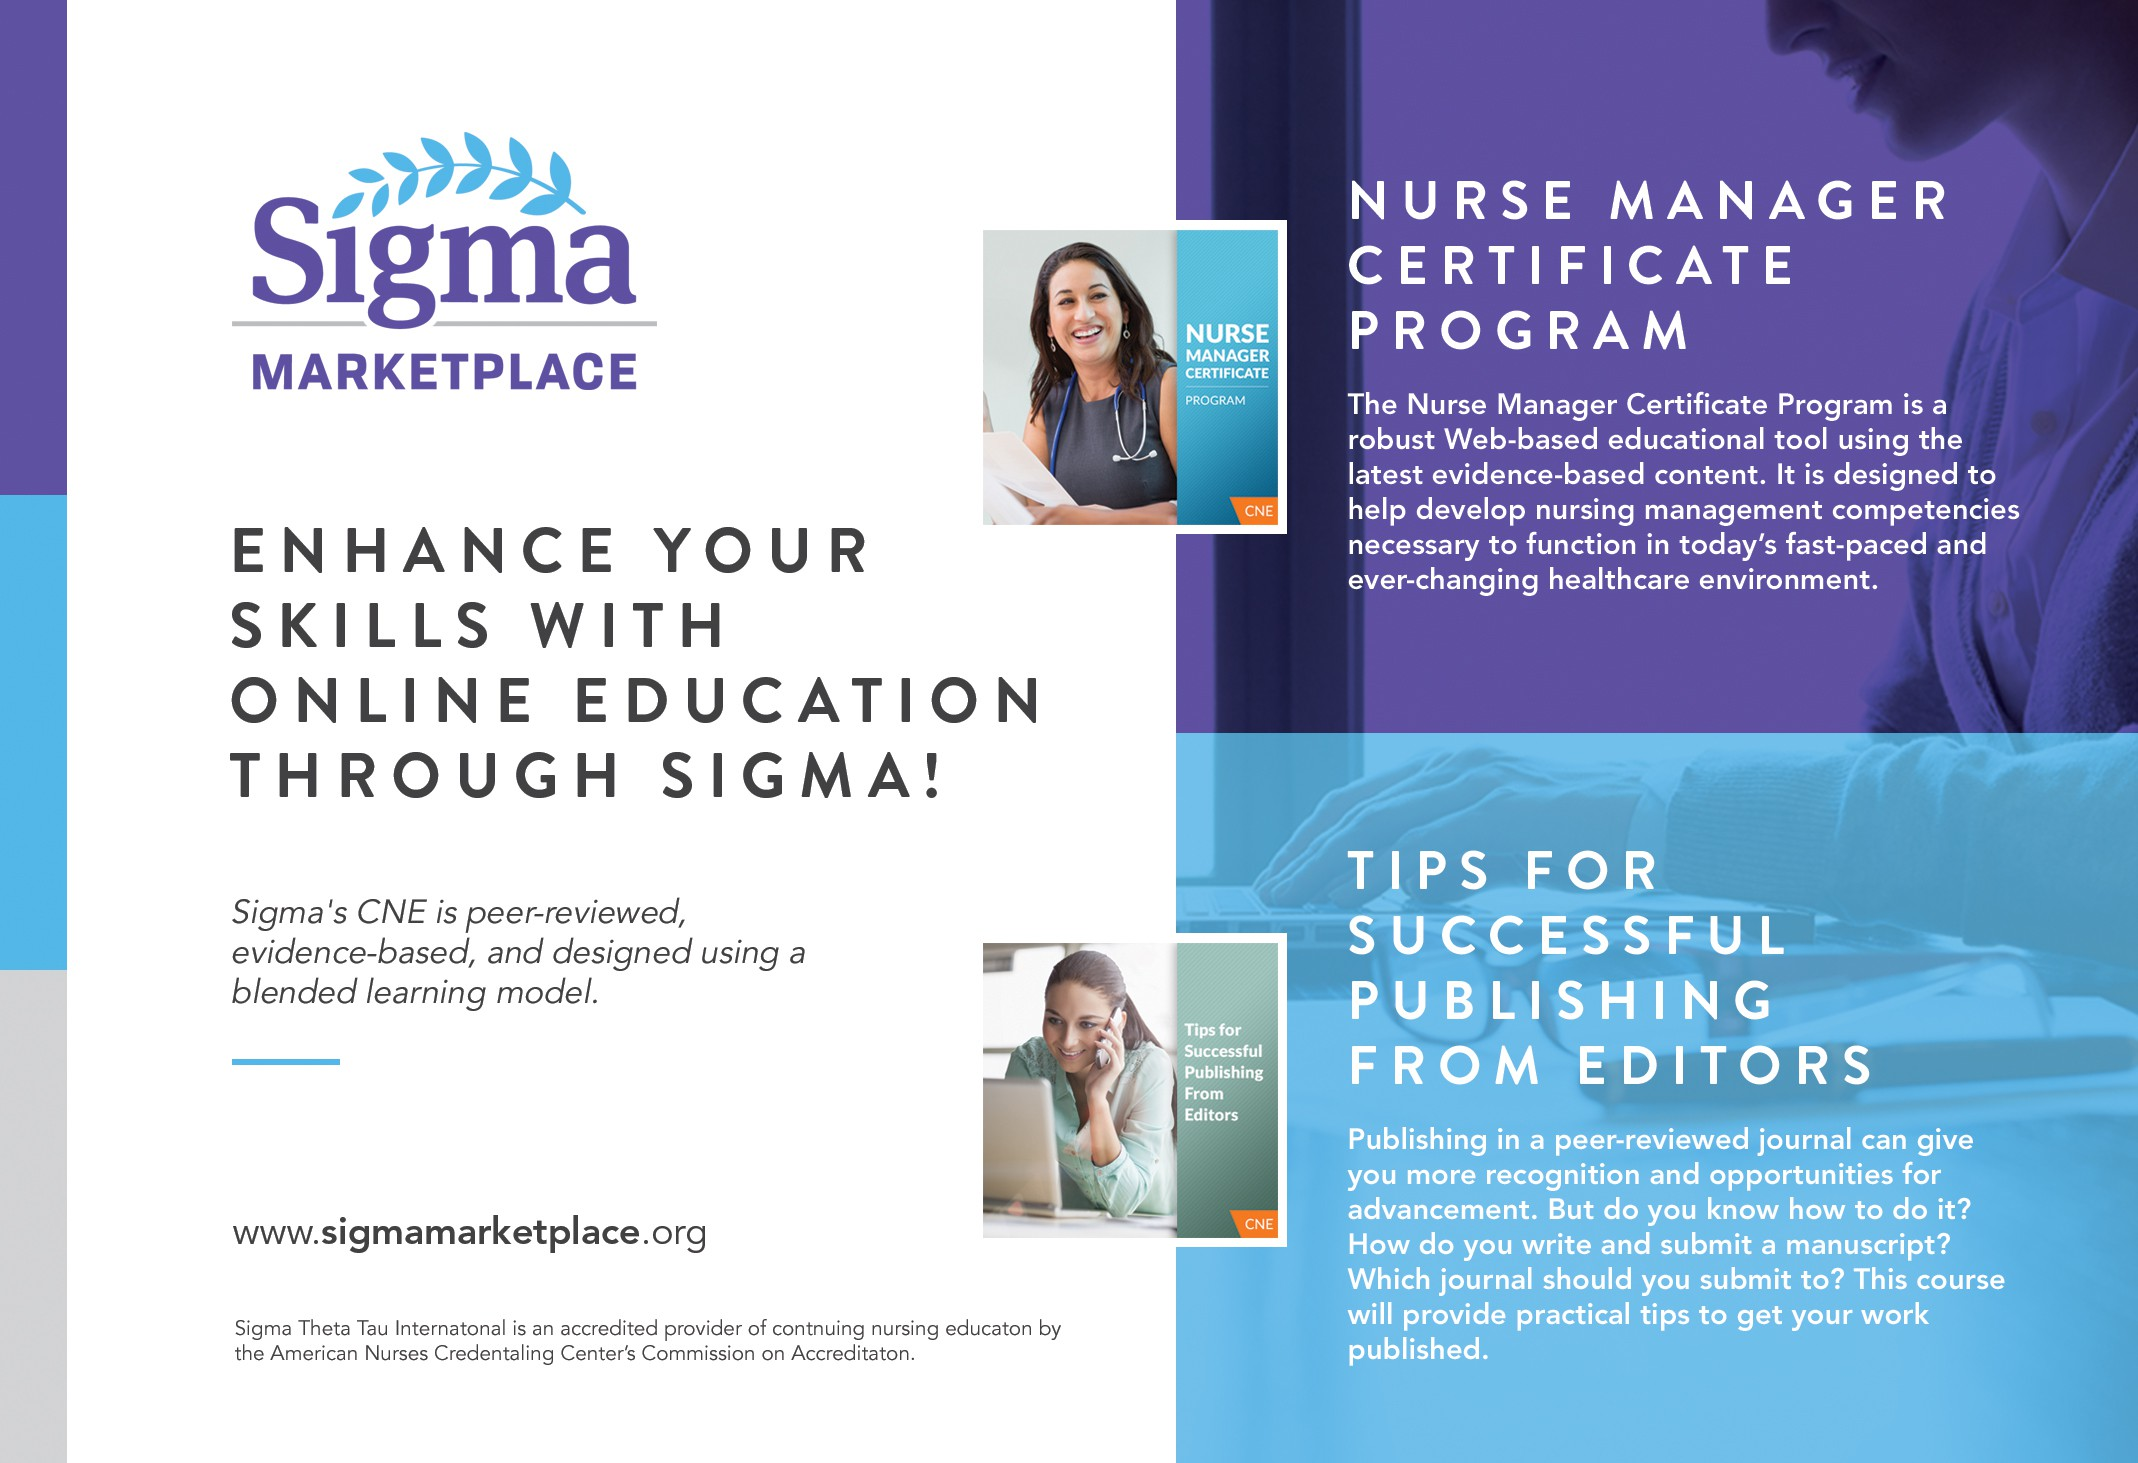 Create an appealing ad for online nursing education! (New brand!)